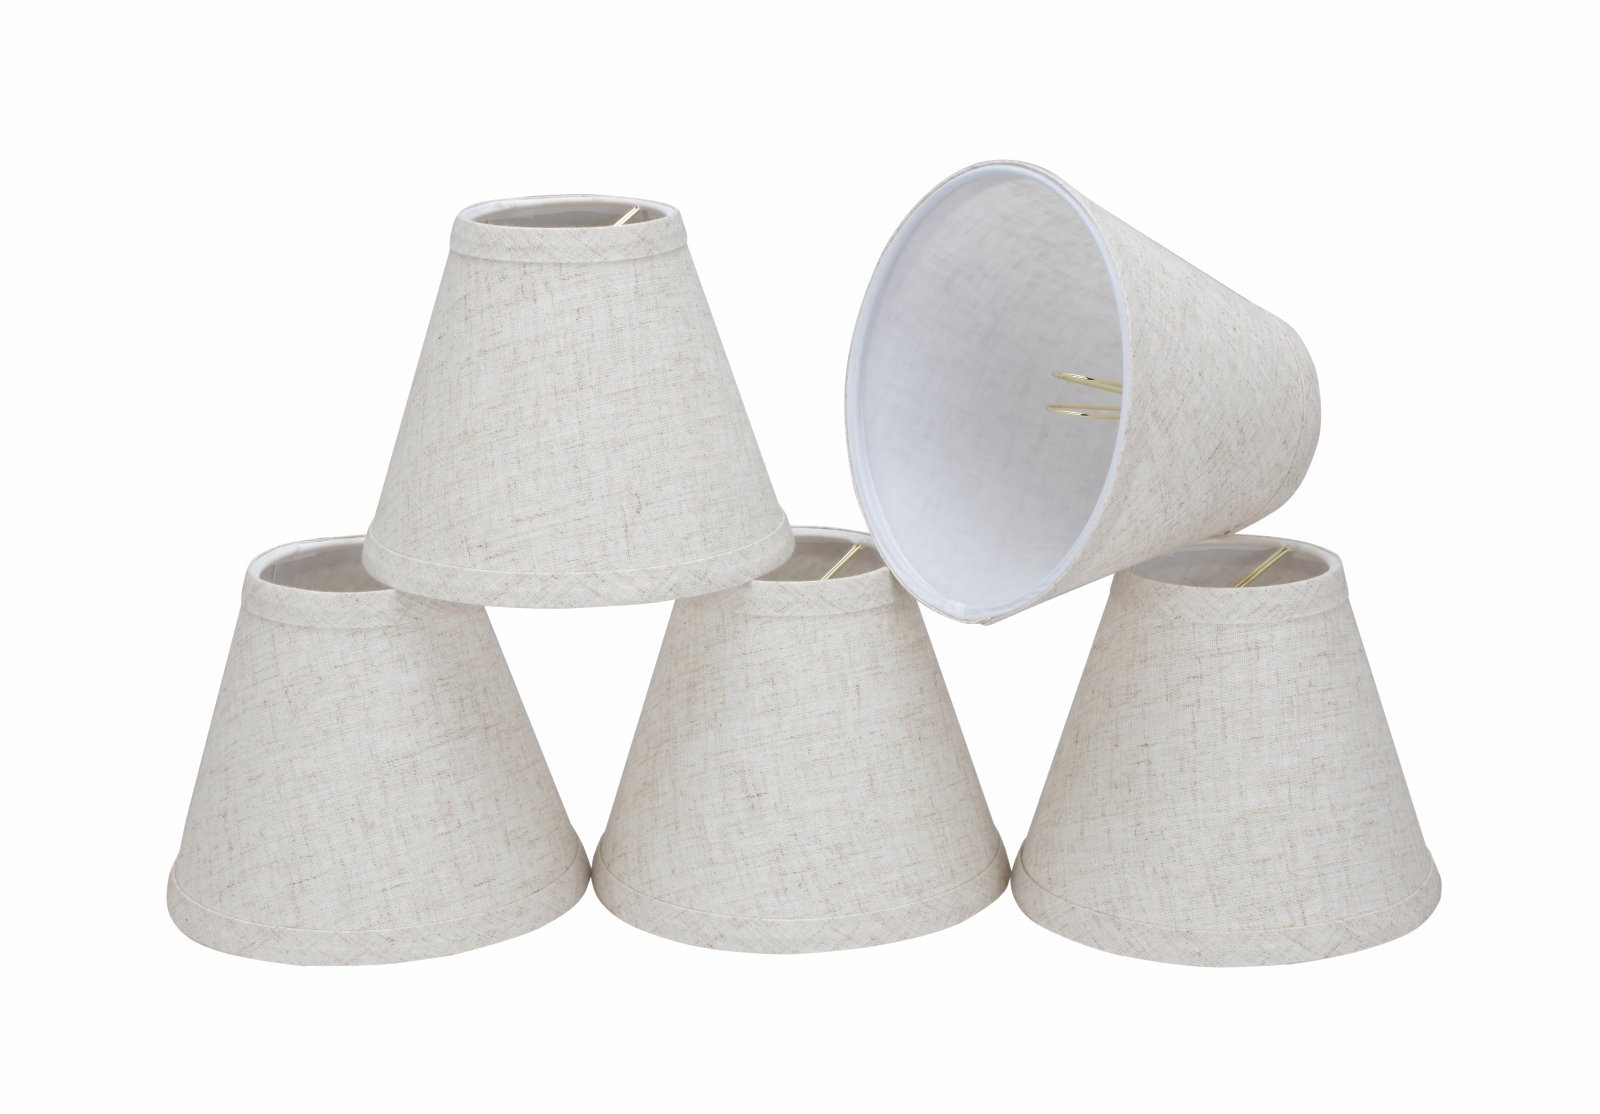 32106-5 Small Hardback Empire Shape Chandelier Clip-On Lamp Shade Set (5 Pack), Transitional Design in Flaxen, 6'' bottom width (3'' x 6'' x 5'')